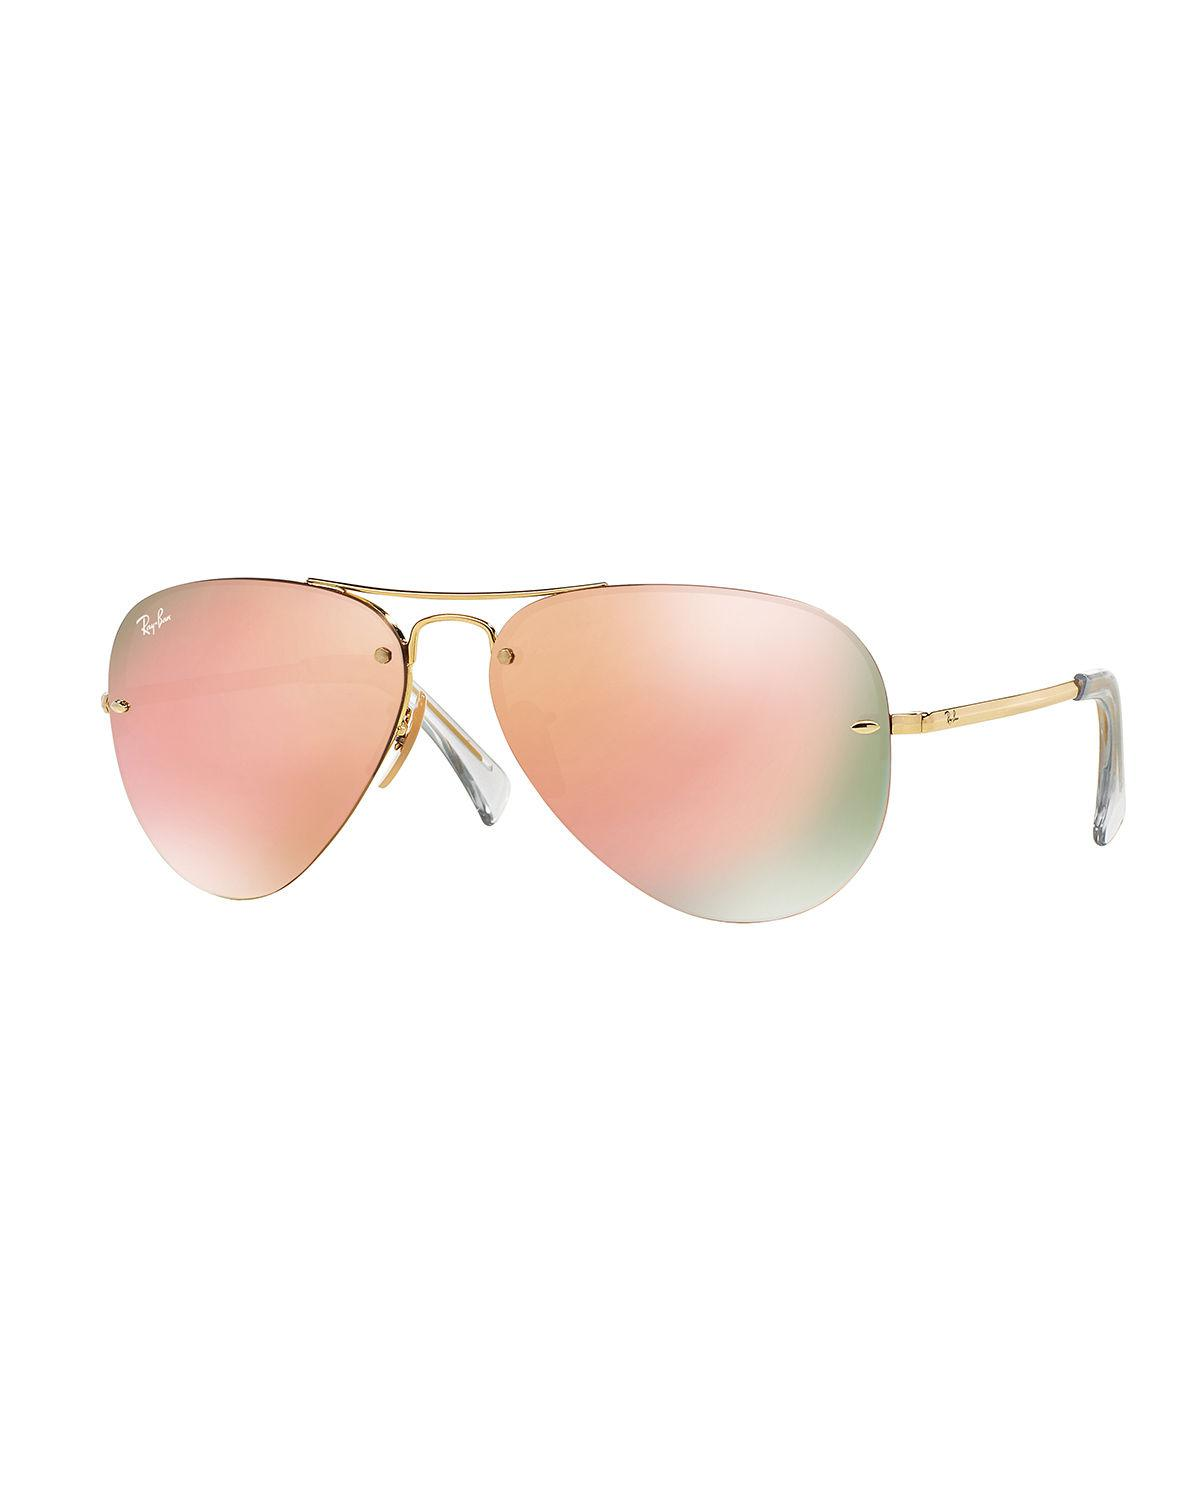 3d2f6139af Lyst - Ray-Ban Rimless Mirrored Iridescent Aviator Sunglasses in Brown